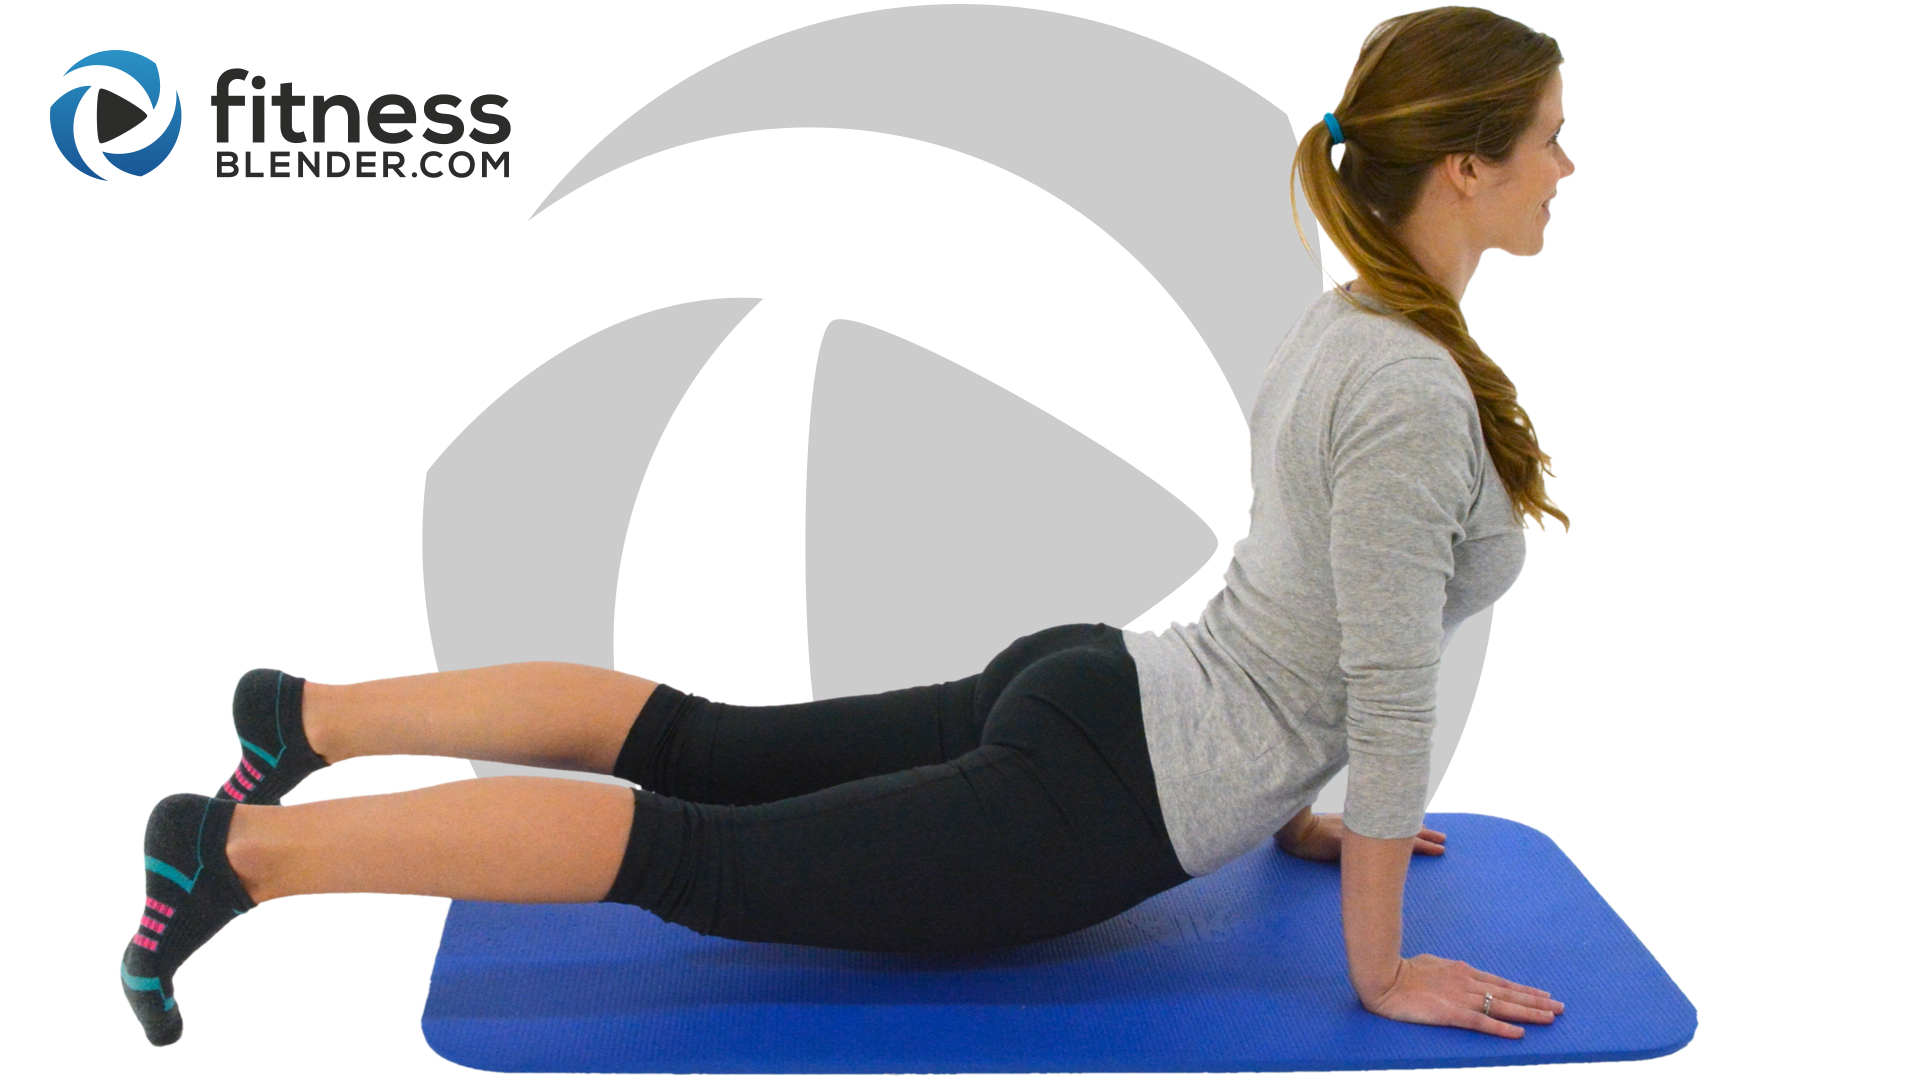 Flexibility Yoga Stretch Workout How To Do The Center Splits For Beginners Psychetruth